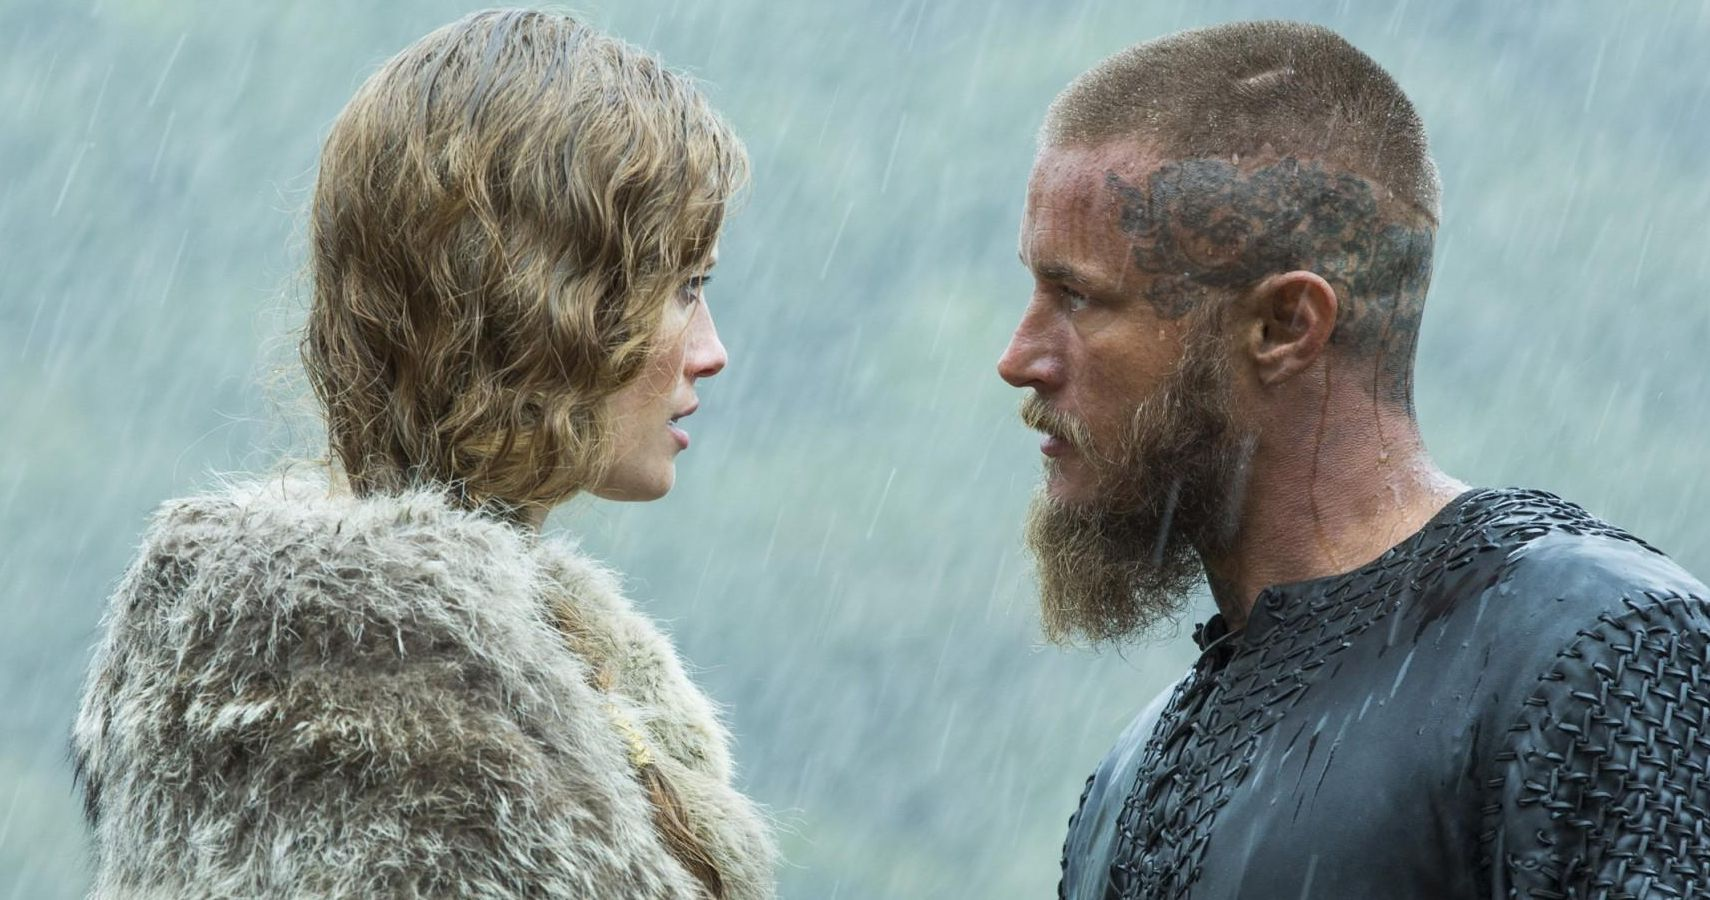 Ragnar Pictures in 2019 t Vikings travis fimmel Vikings